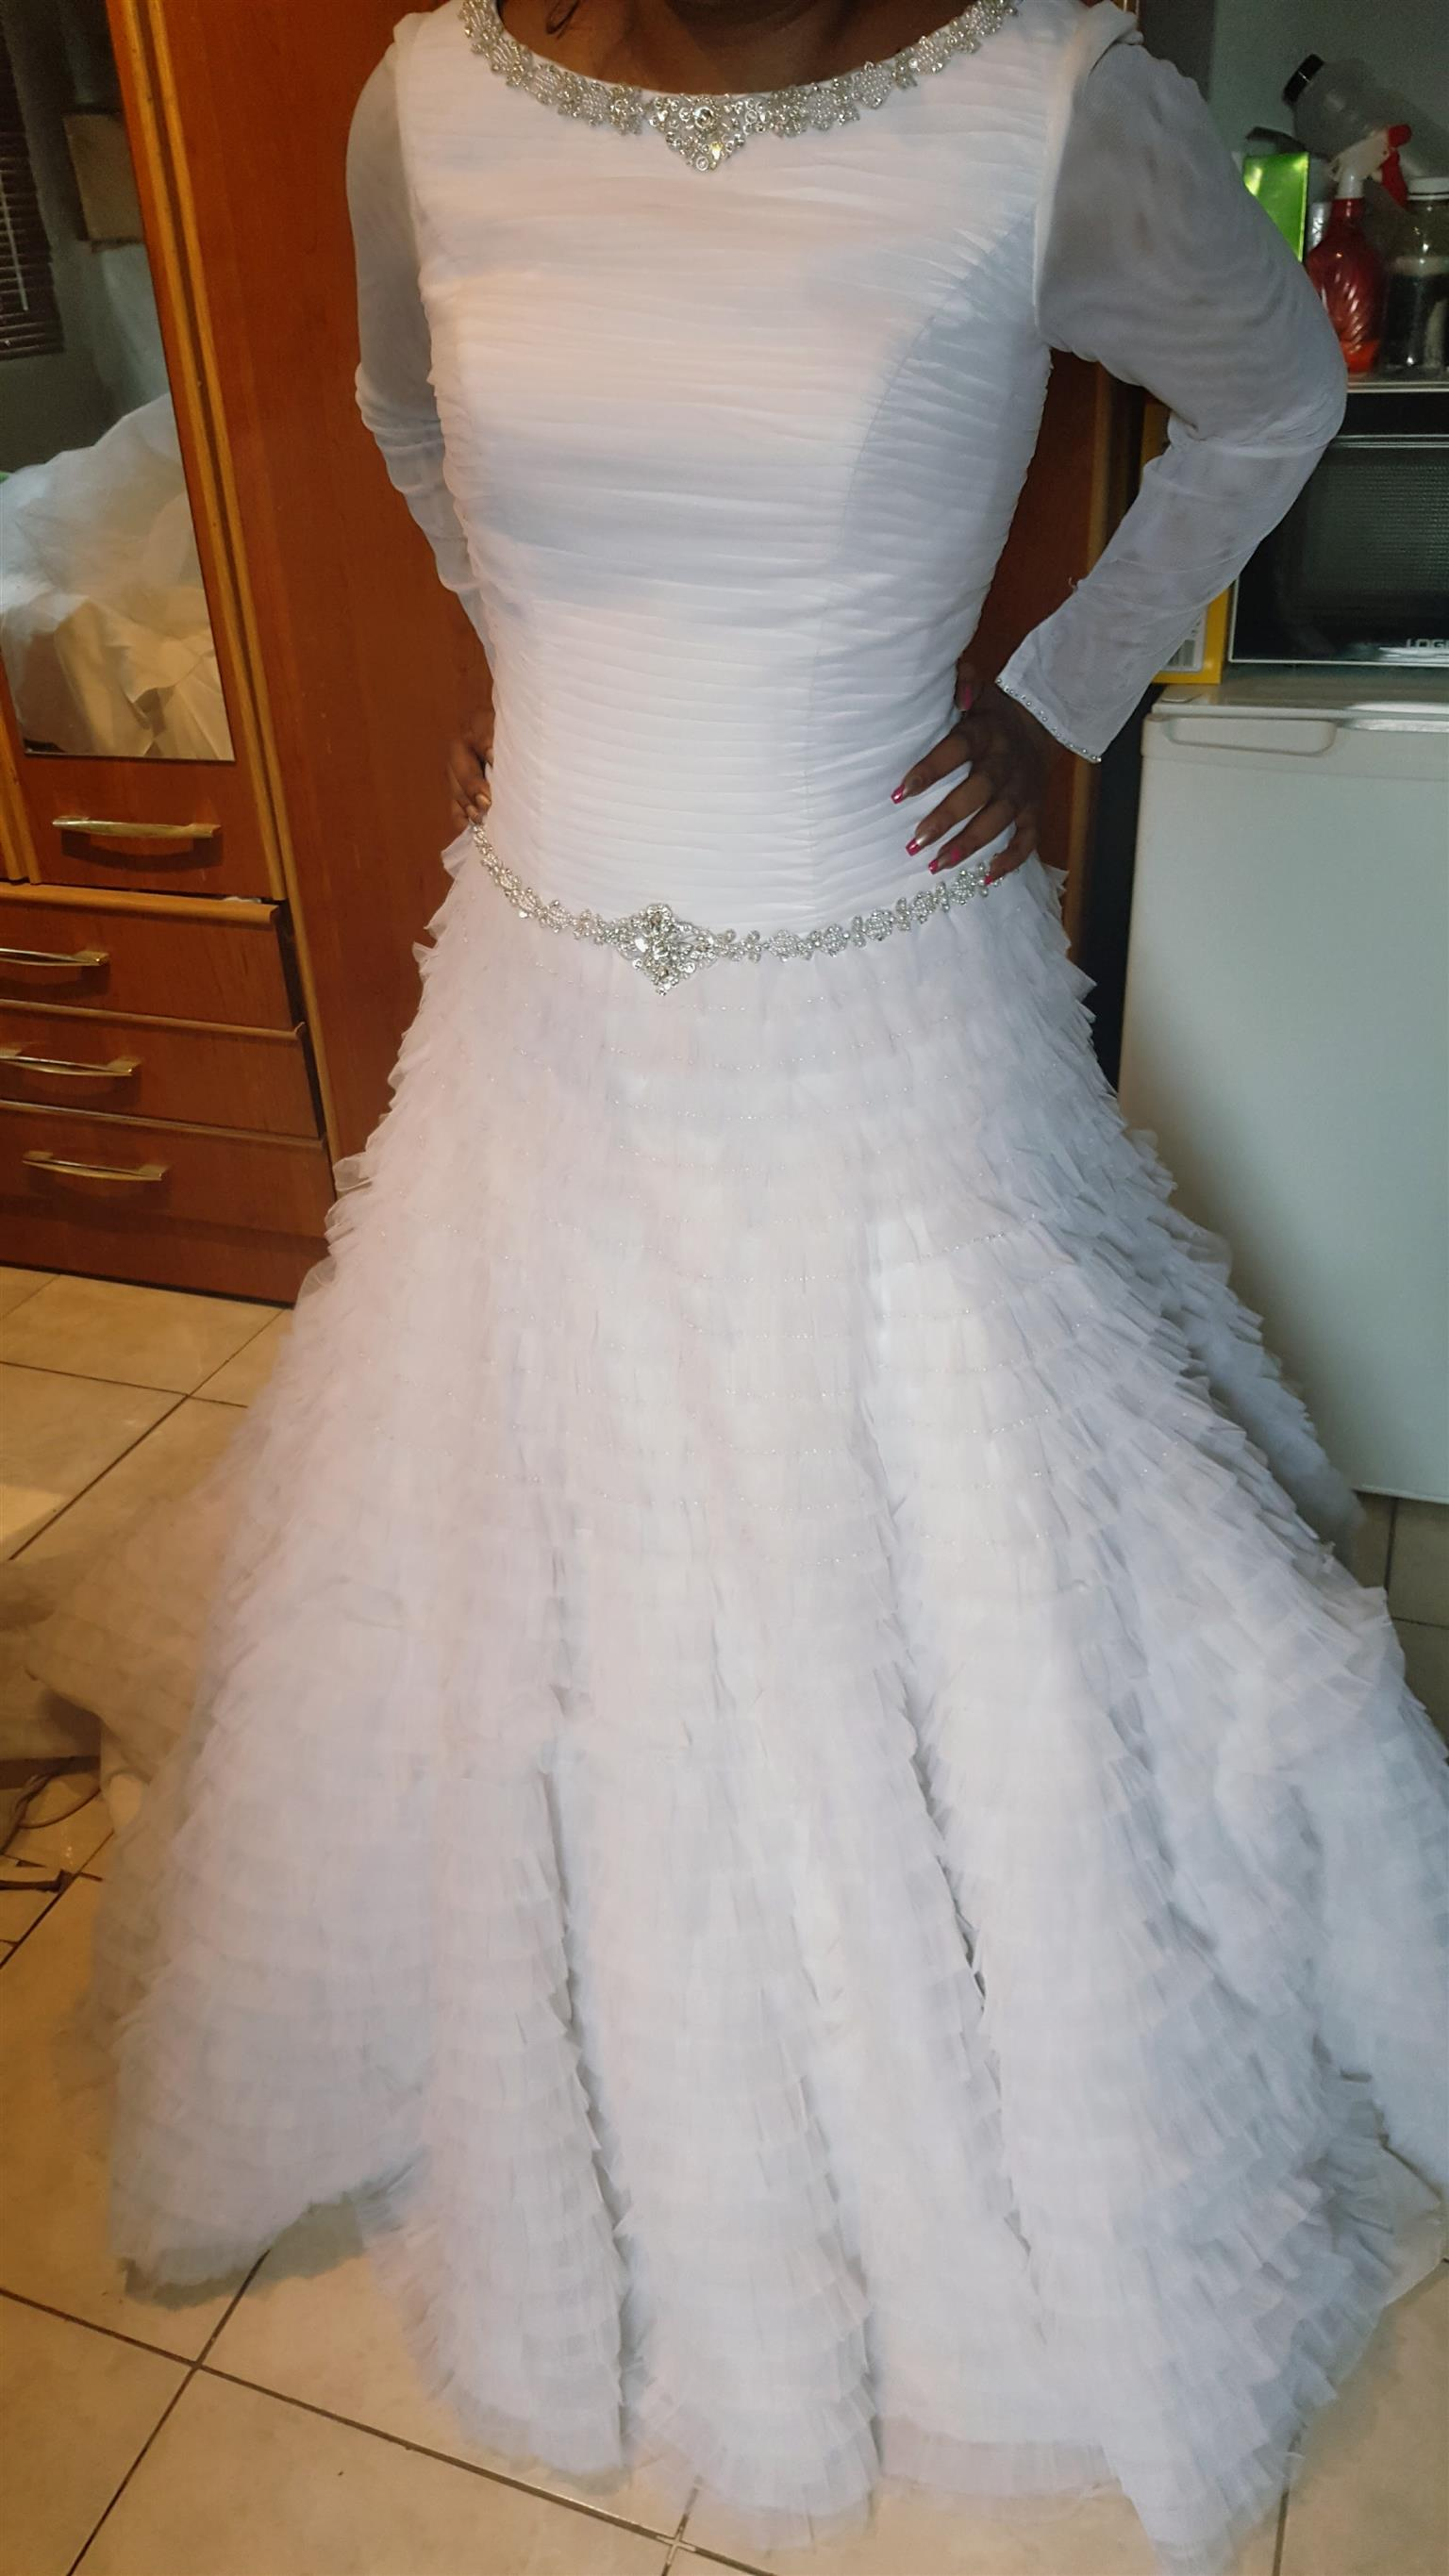 Affordable beautiful bridal gowns for hire | Junk Mail